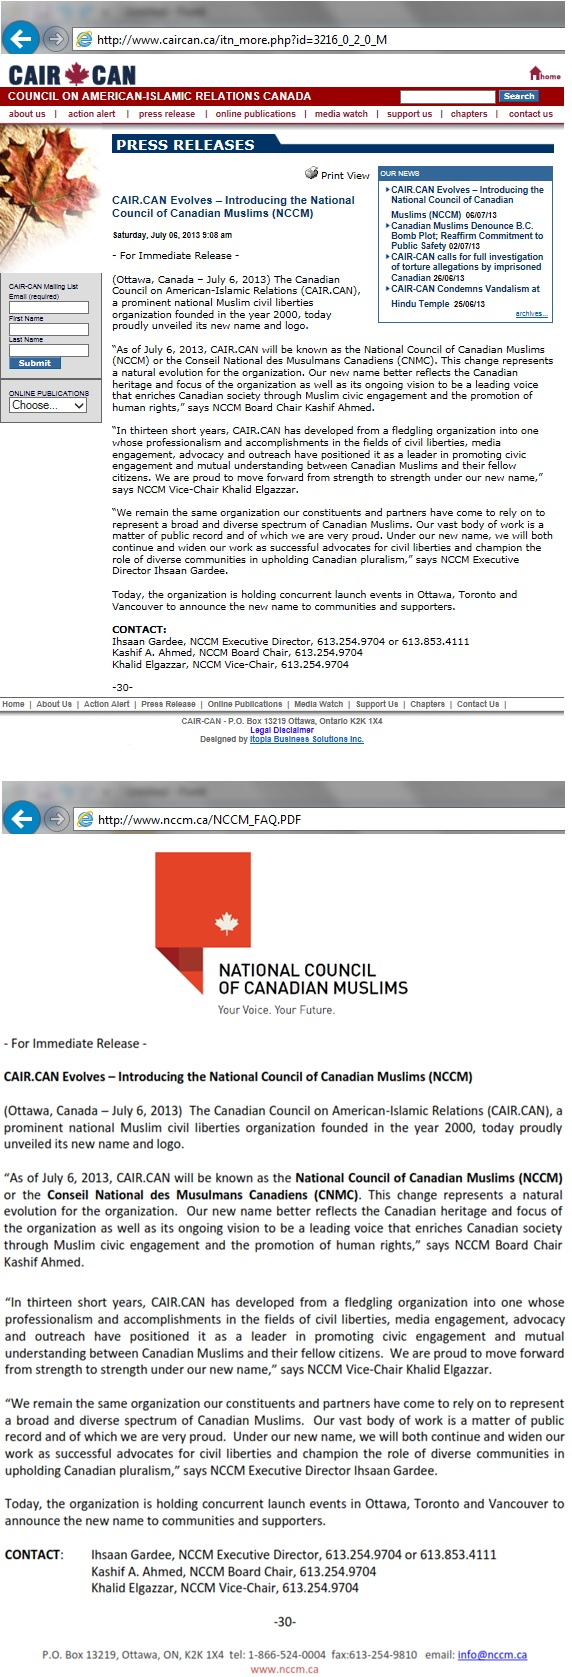 cair-can nccm press releases